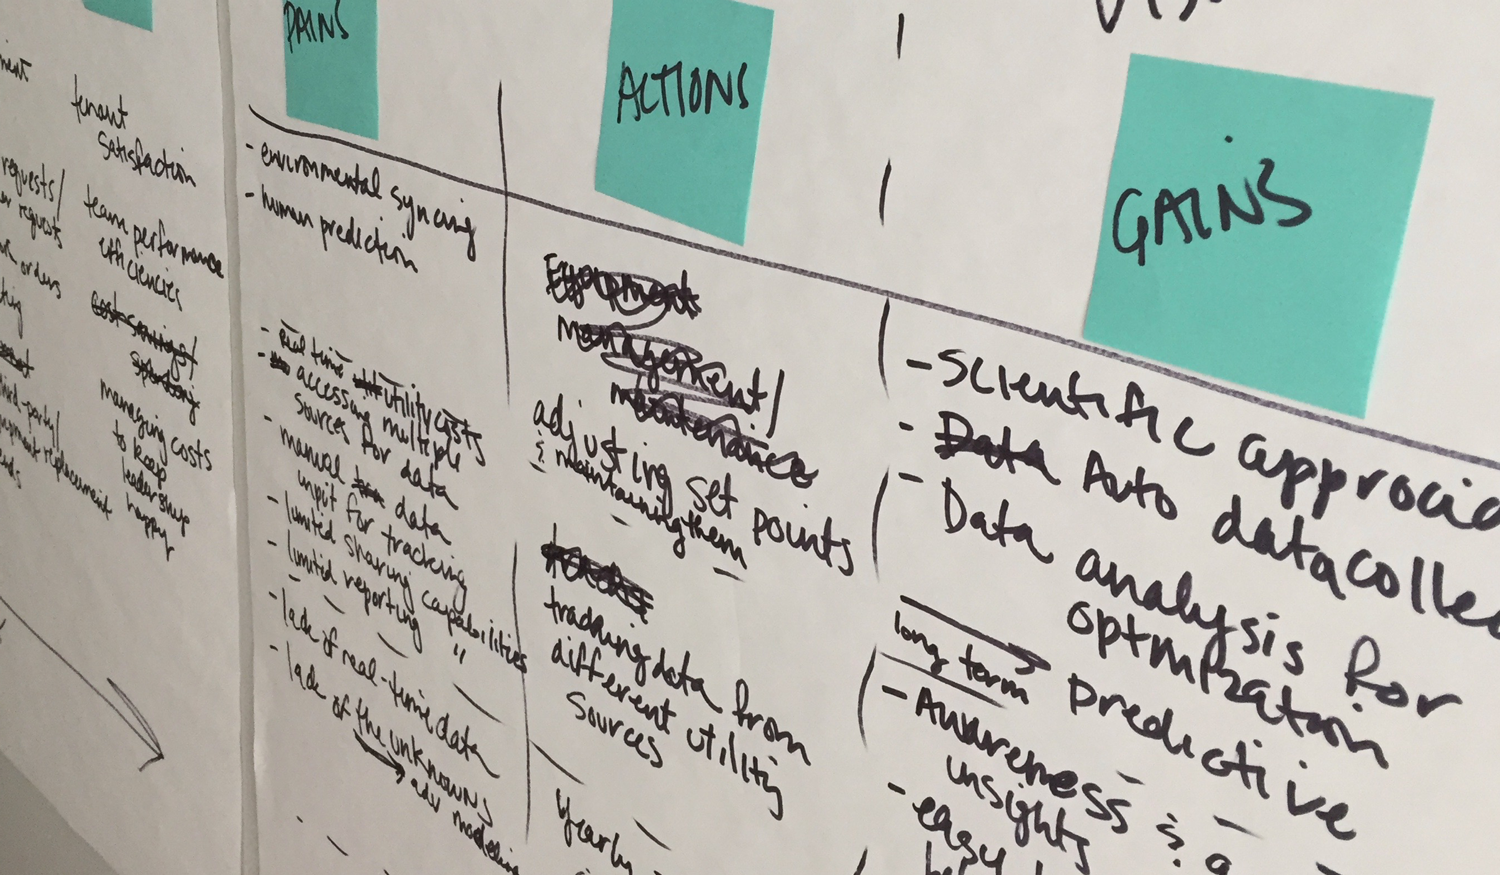 Journey Mapping Facilitation Notes